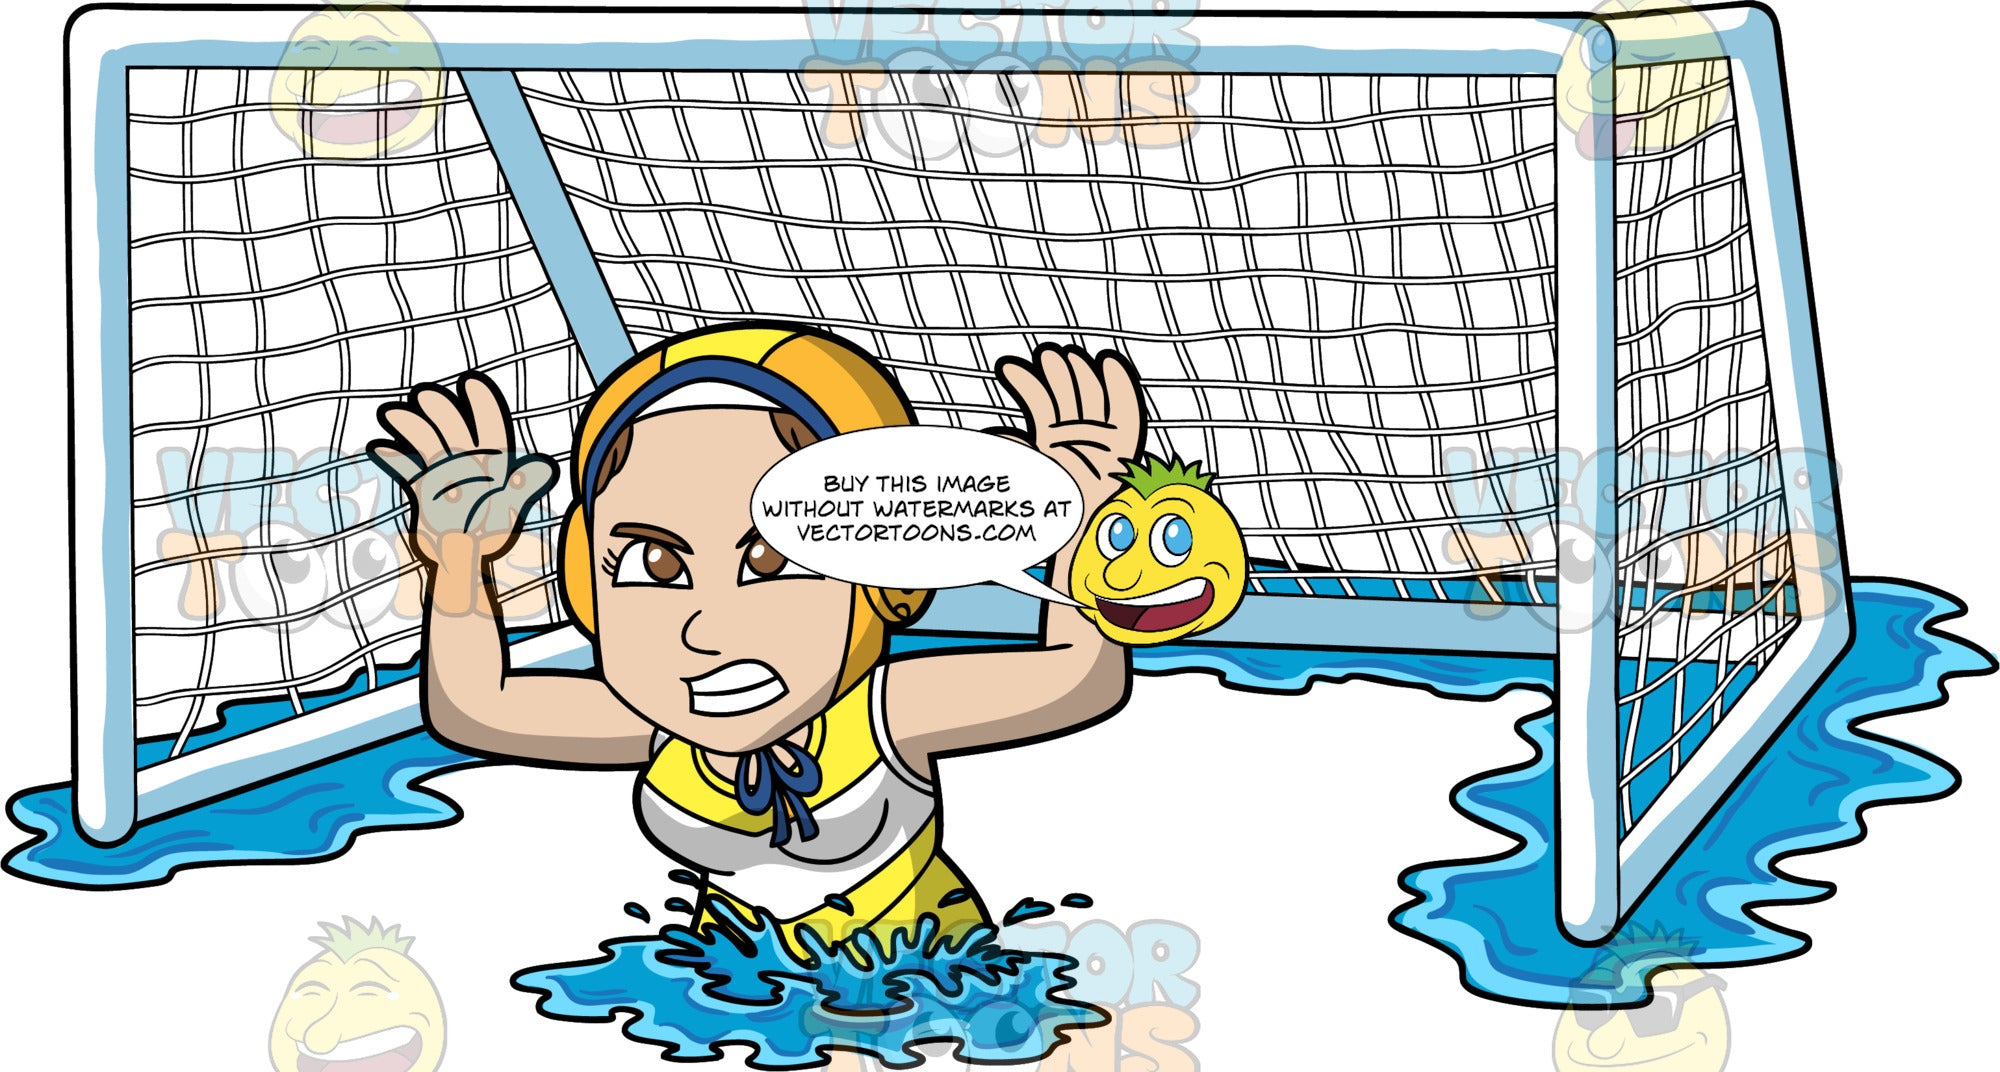 A Woman Aggressively Defending A Water Polo Net. A woman wearing an orange with yellow water polo cap, and a yellow and white bathing suit, grits her teeth and holds her arms up as she tries to defend a water polo gaol